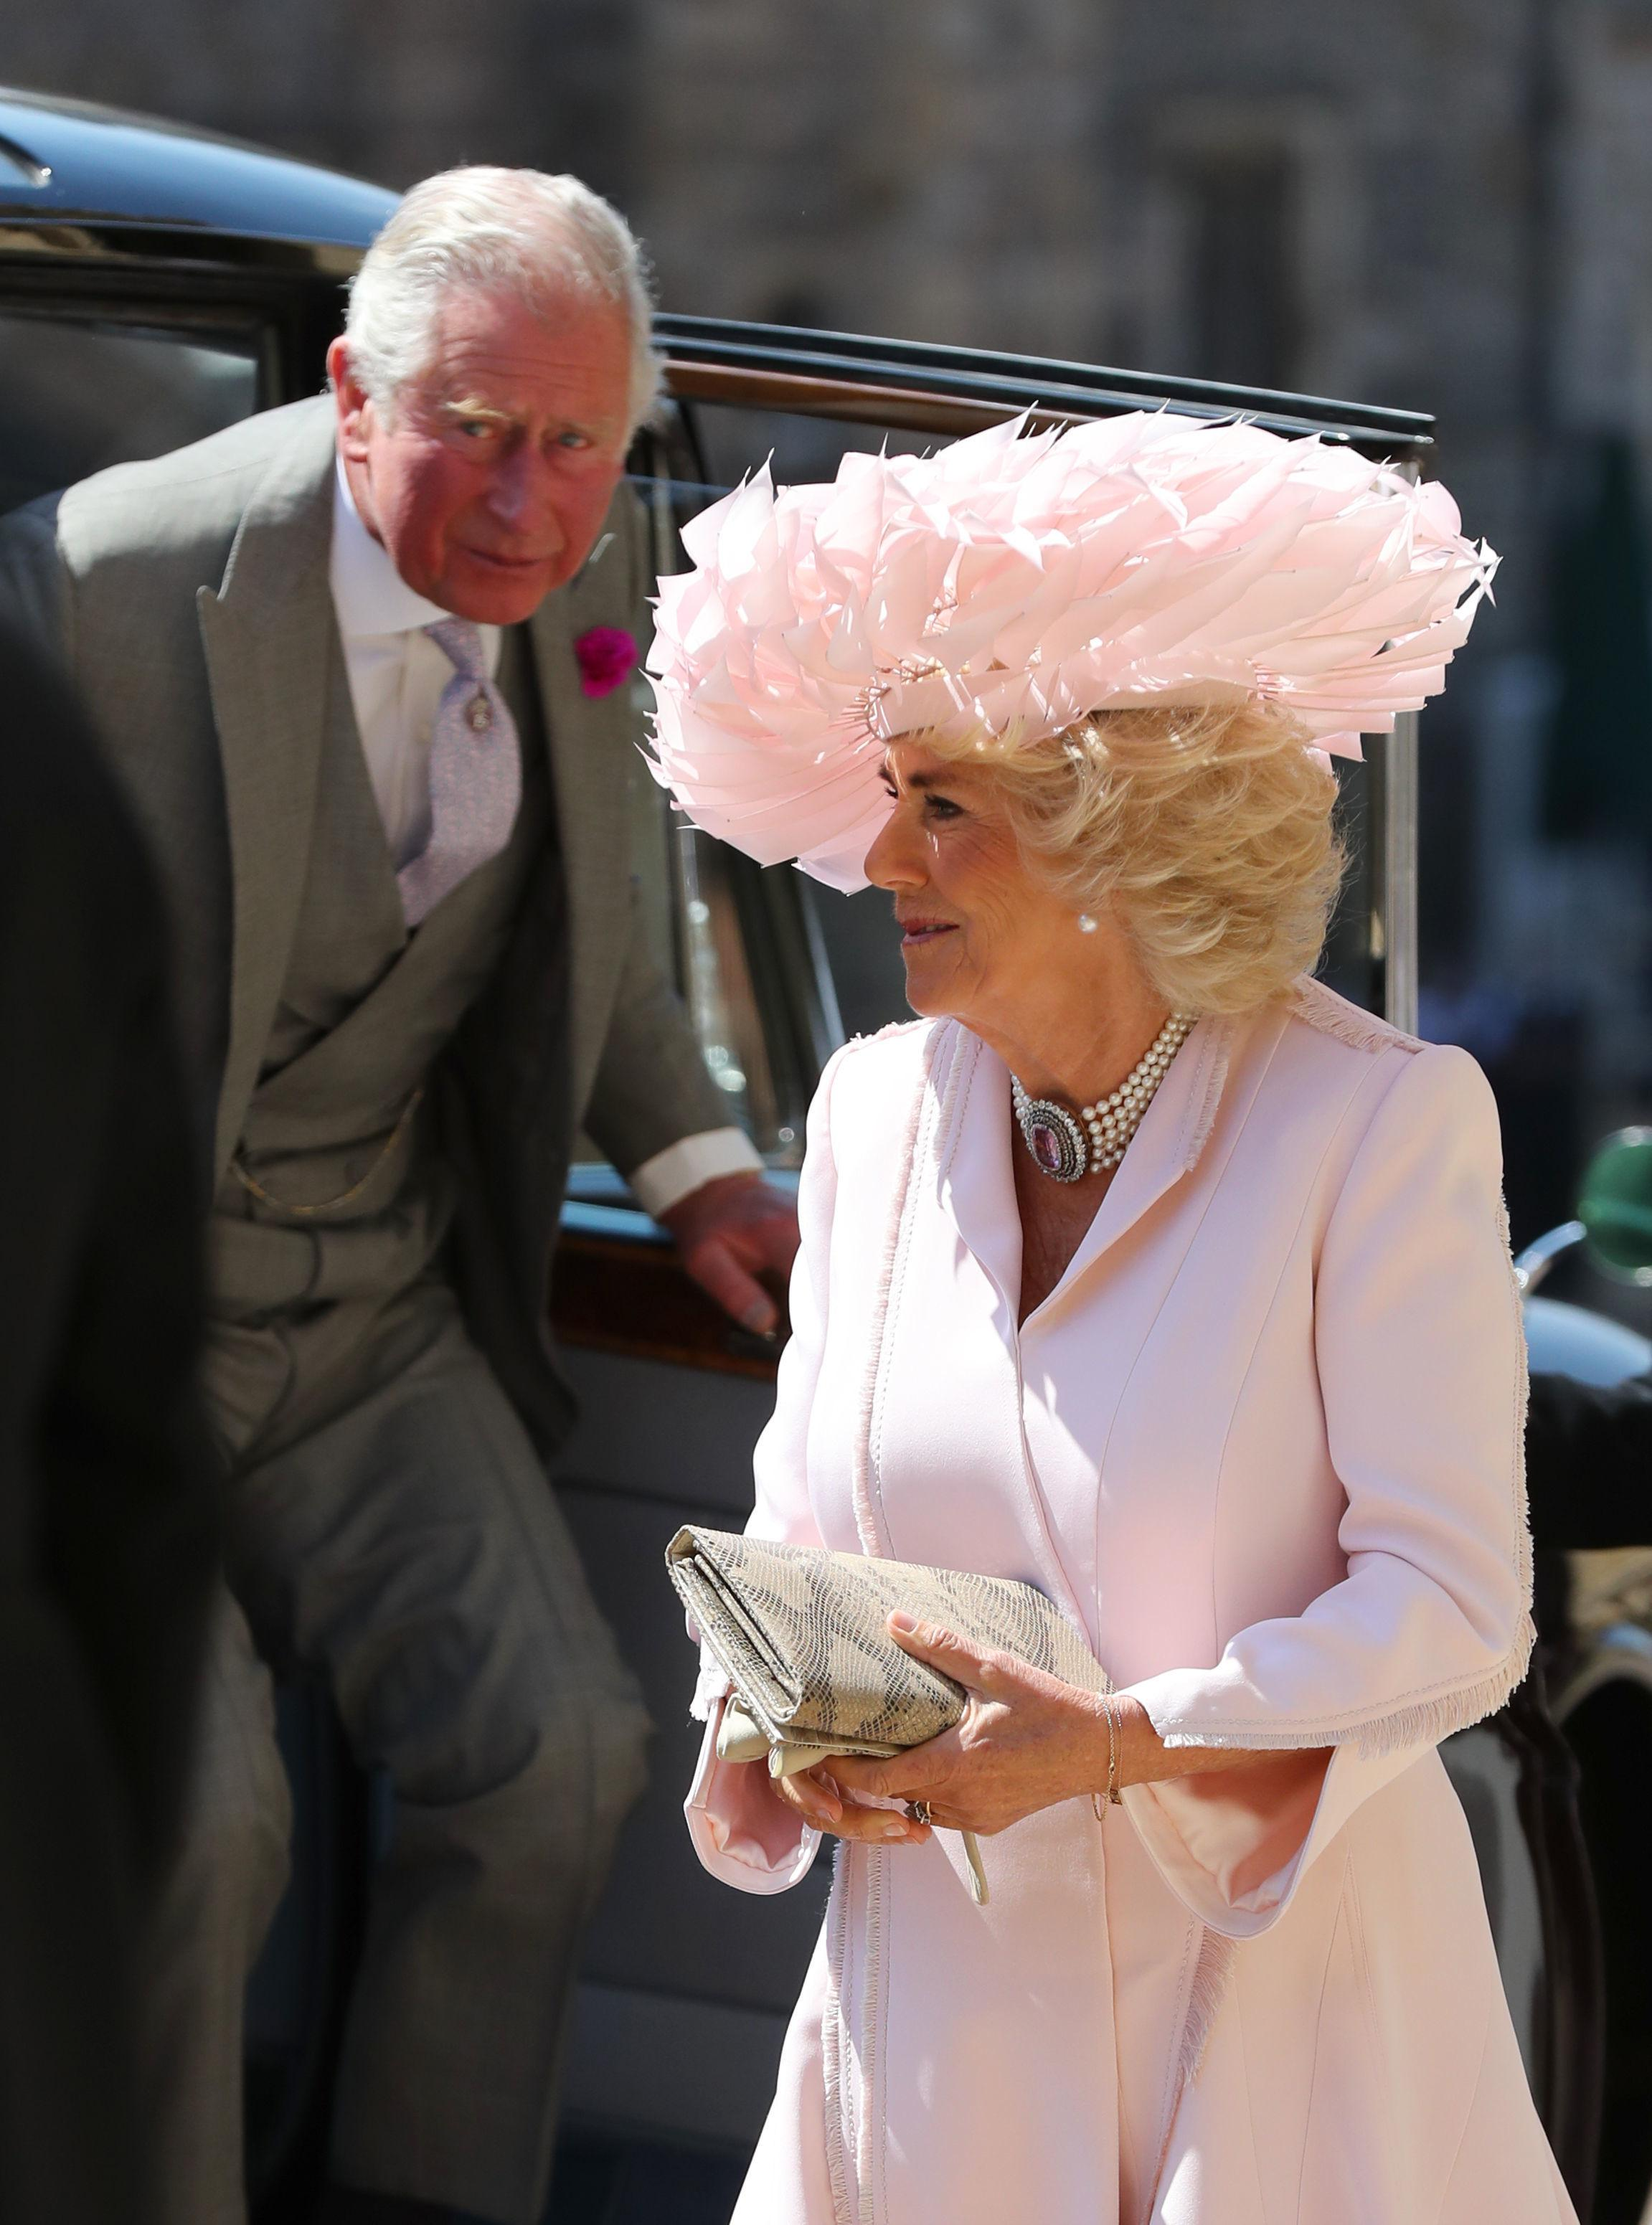 Camilla, Duchess of Cornwall arrives at St George's Chapel at Windsor Castle before the wedding of Prince Harry to Meghan Markle.